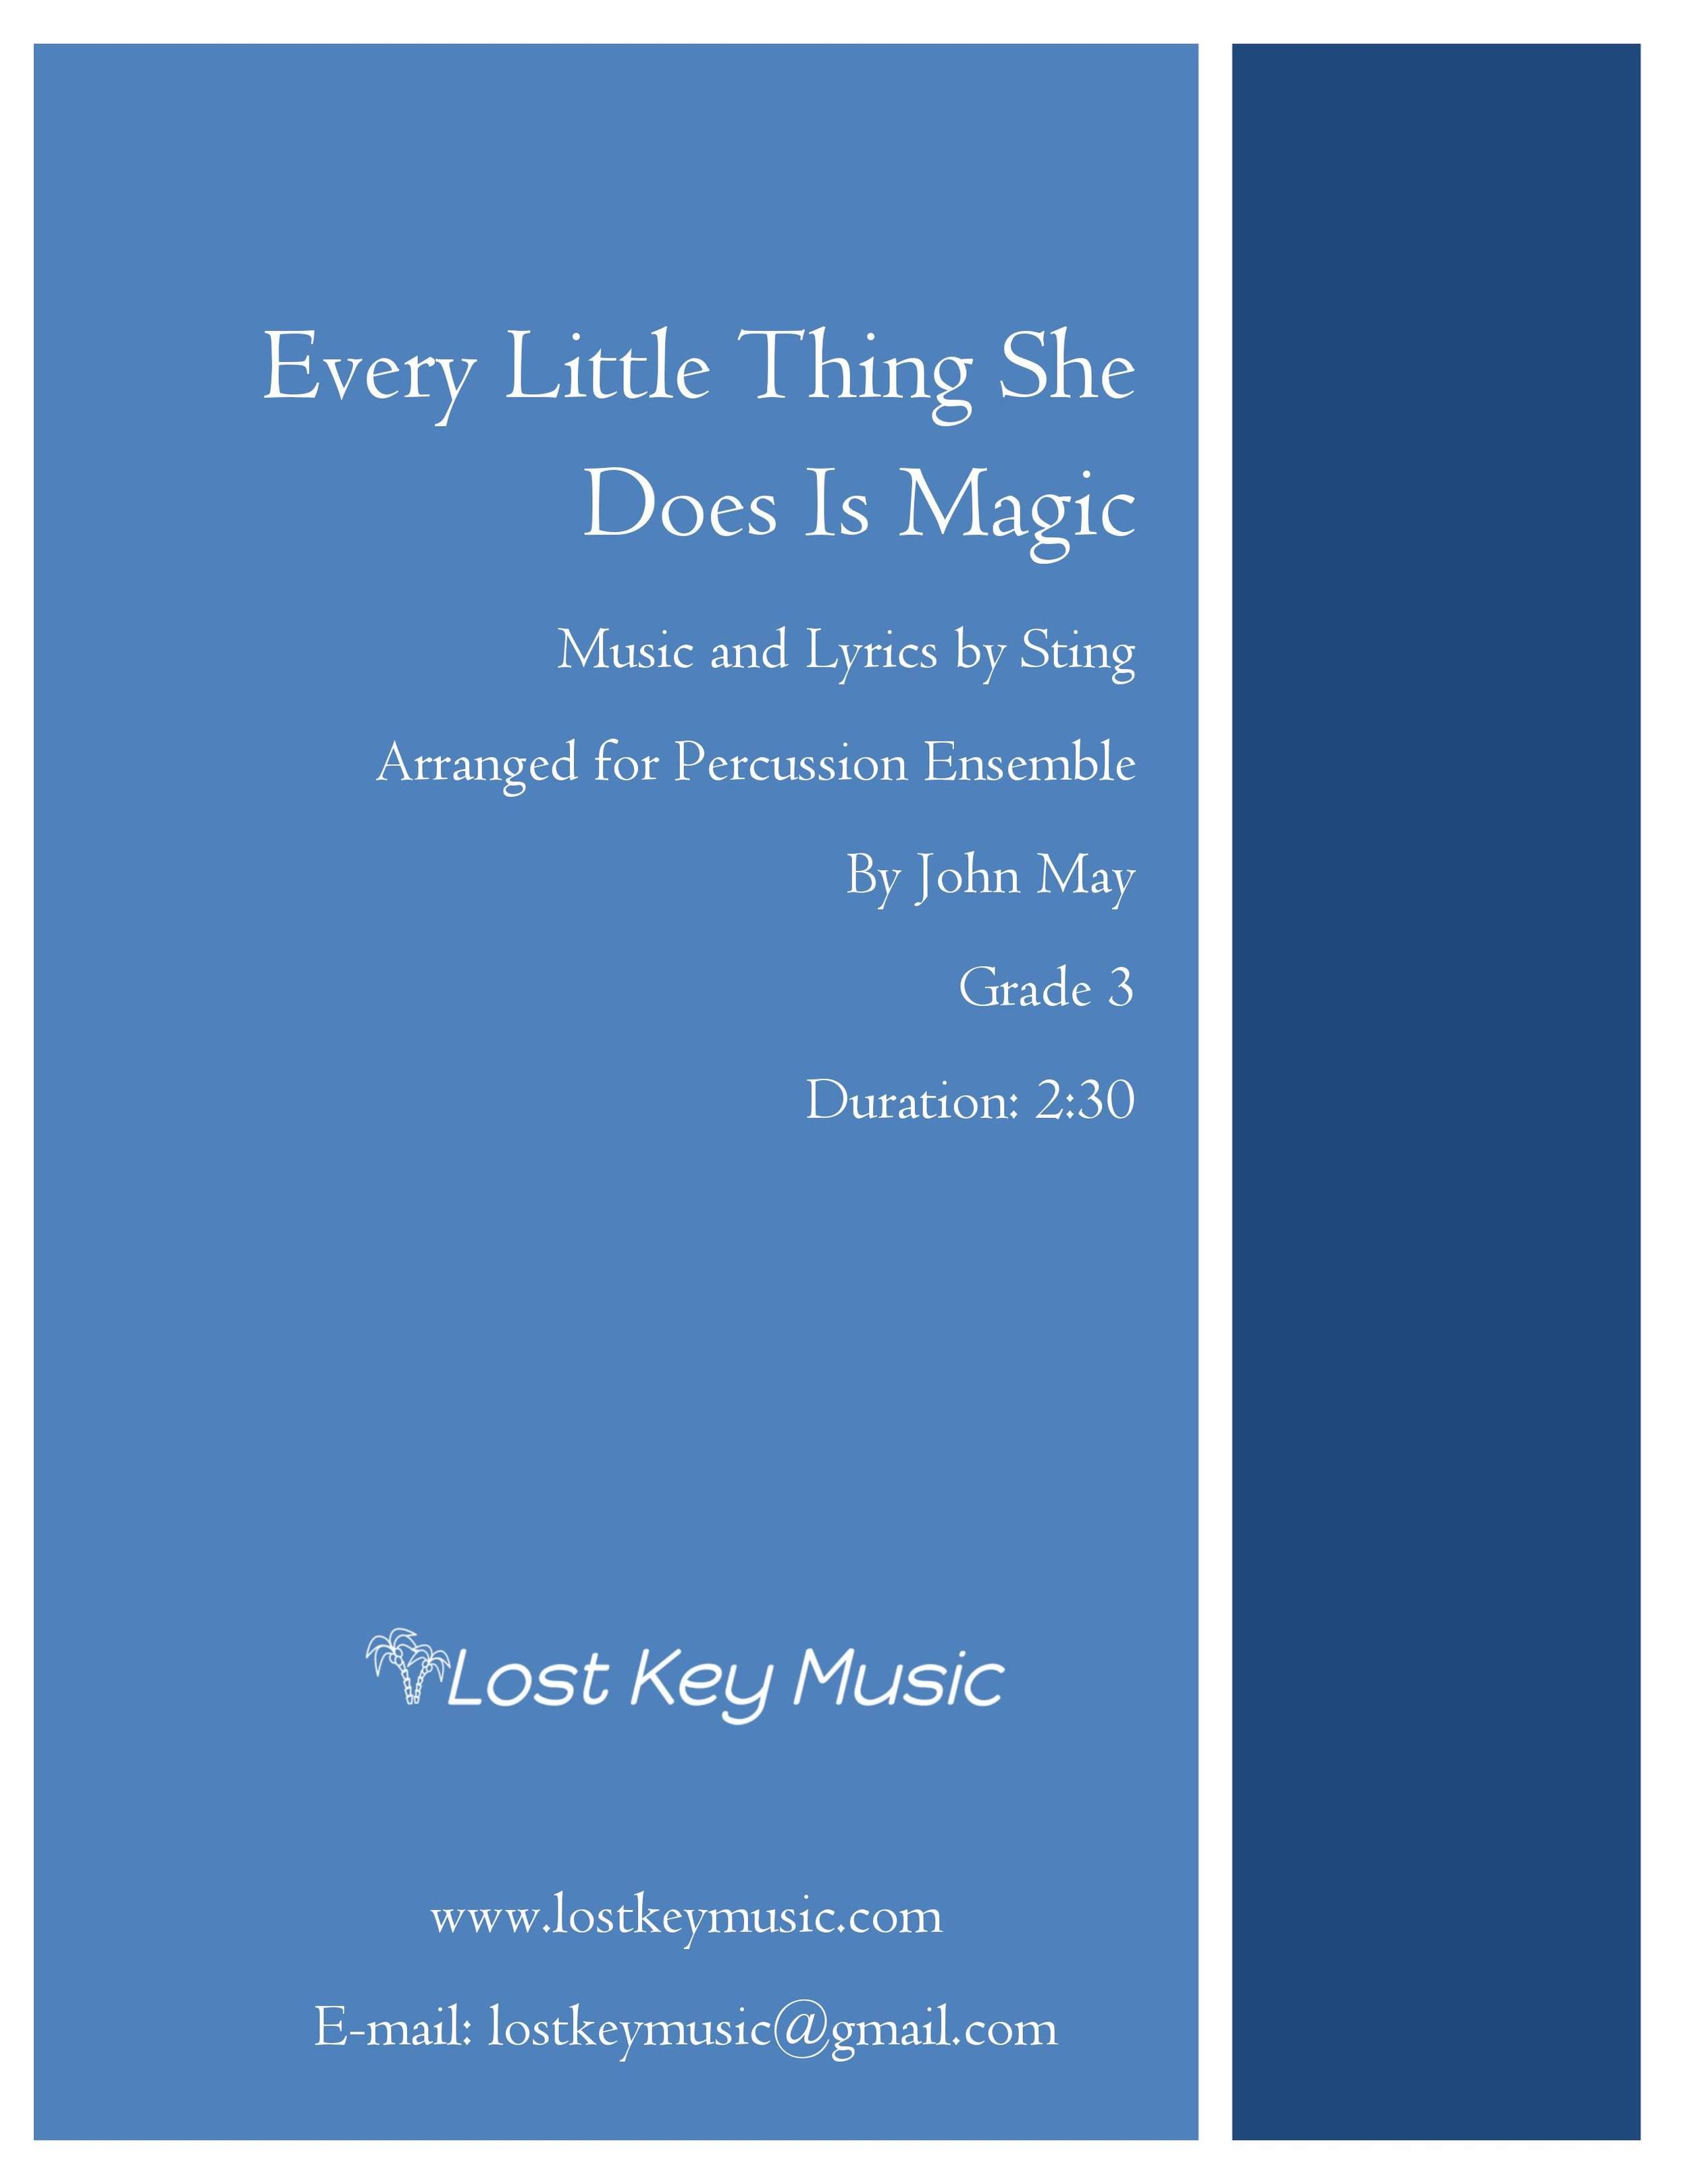 Every Little Thing-Percussion Ensemble-Cover Photo.jpg